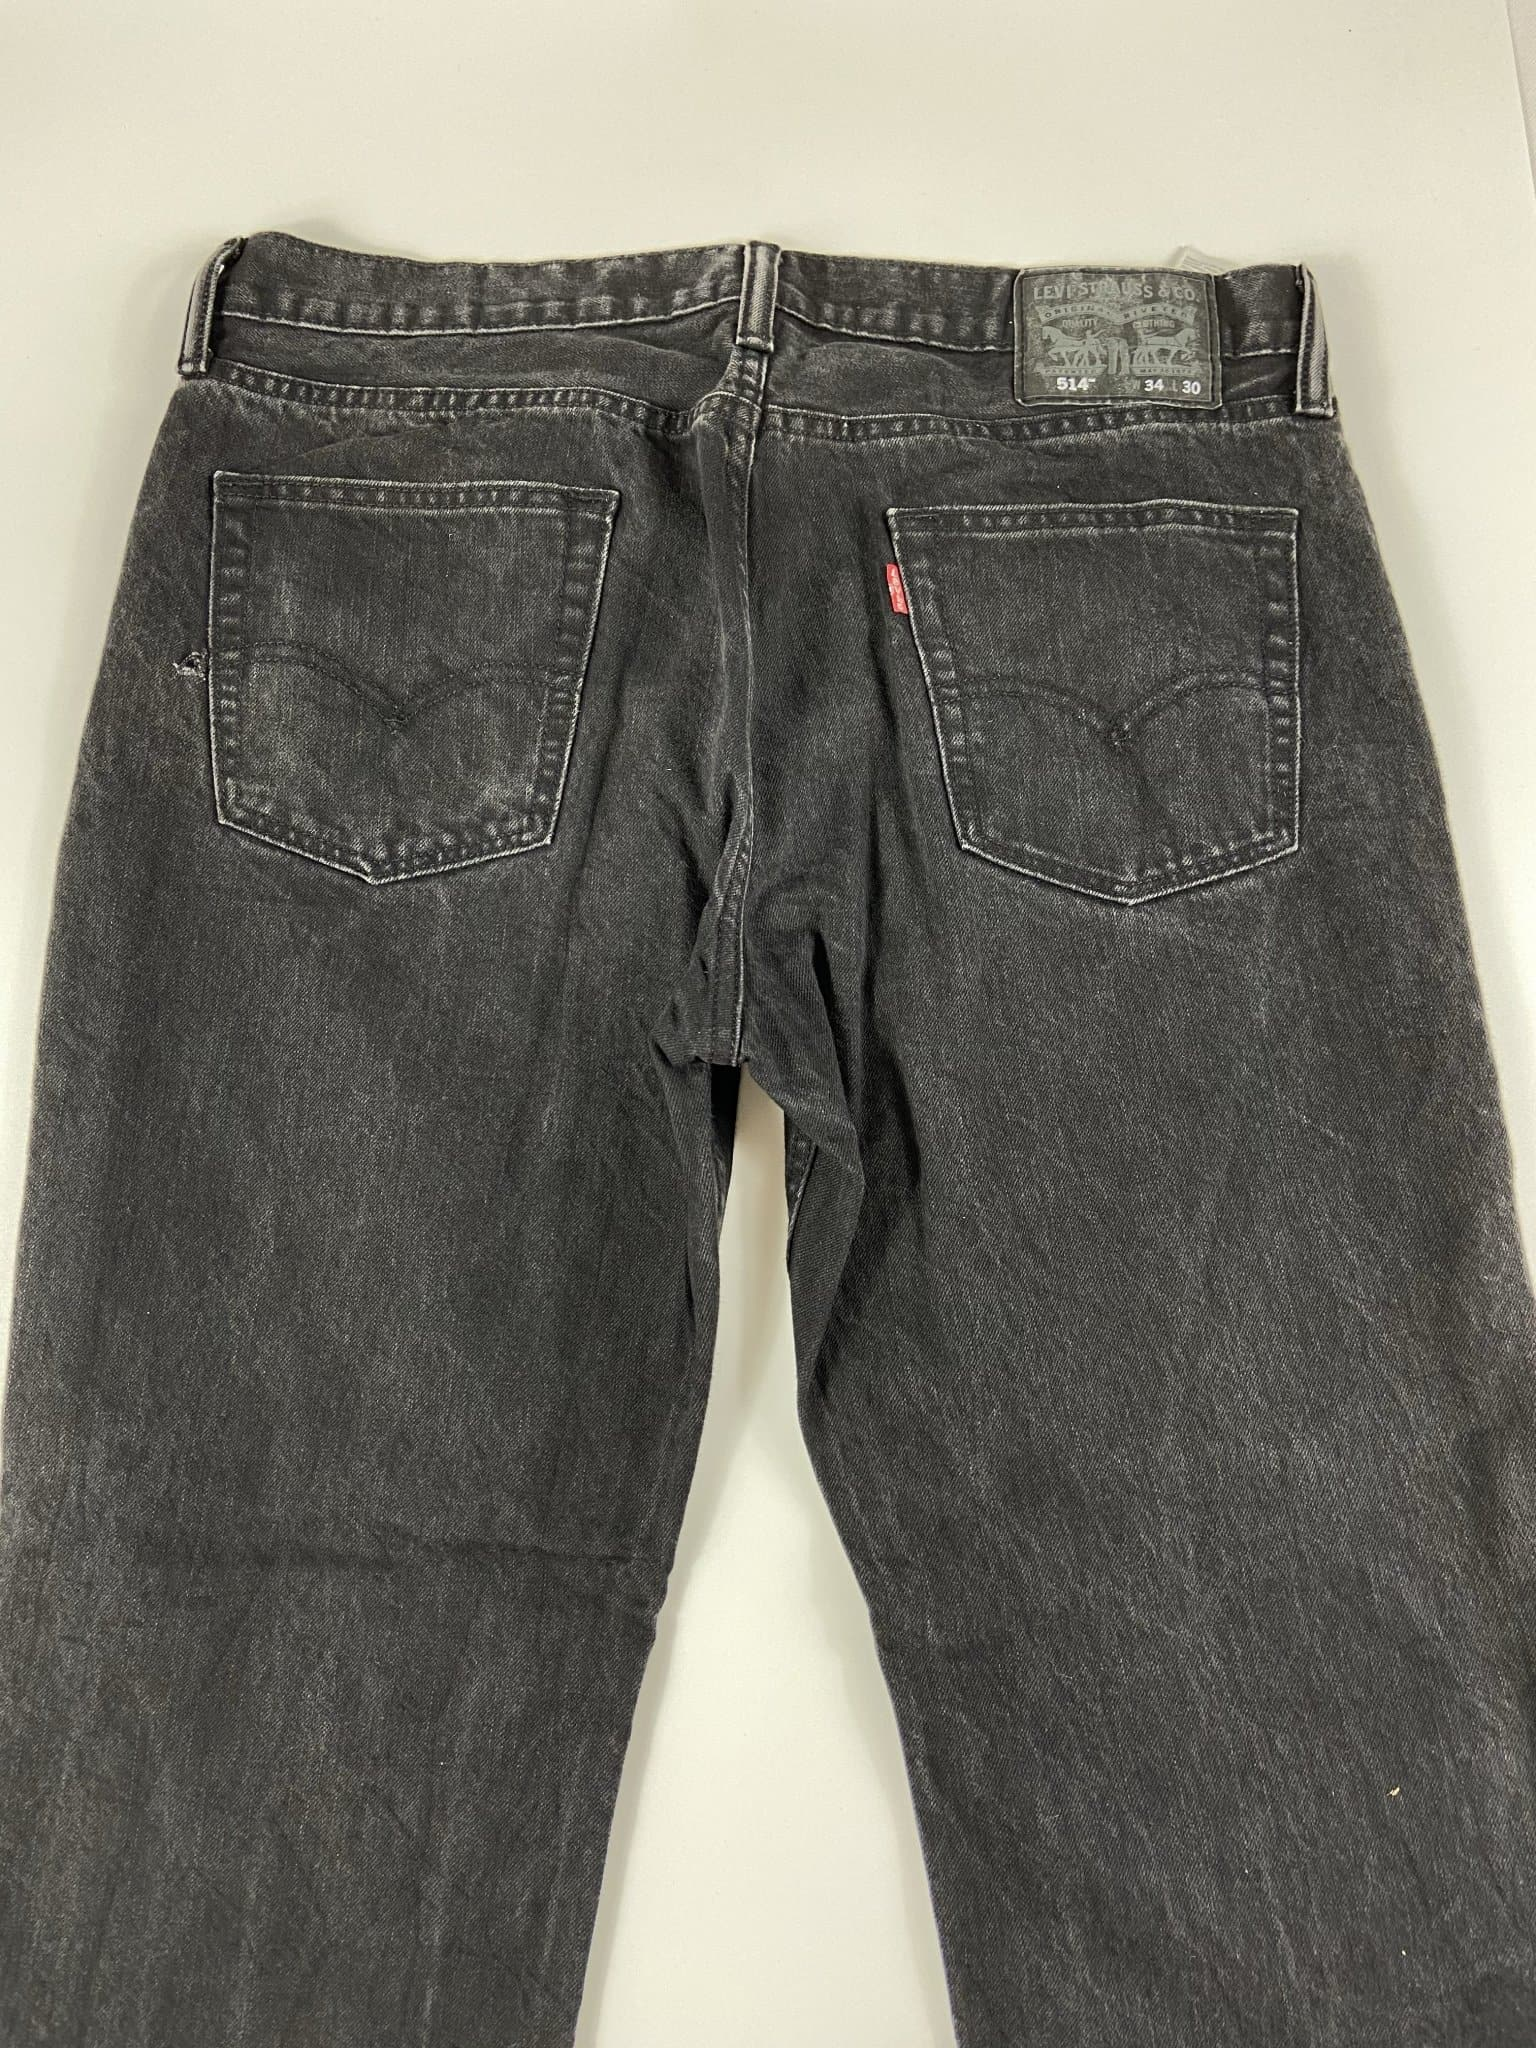 Vintage Levi's 514 Classic Zip Fly Jeans W34 L30 (I11) - Discounted Deals UK